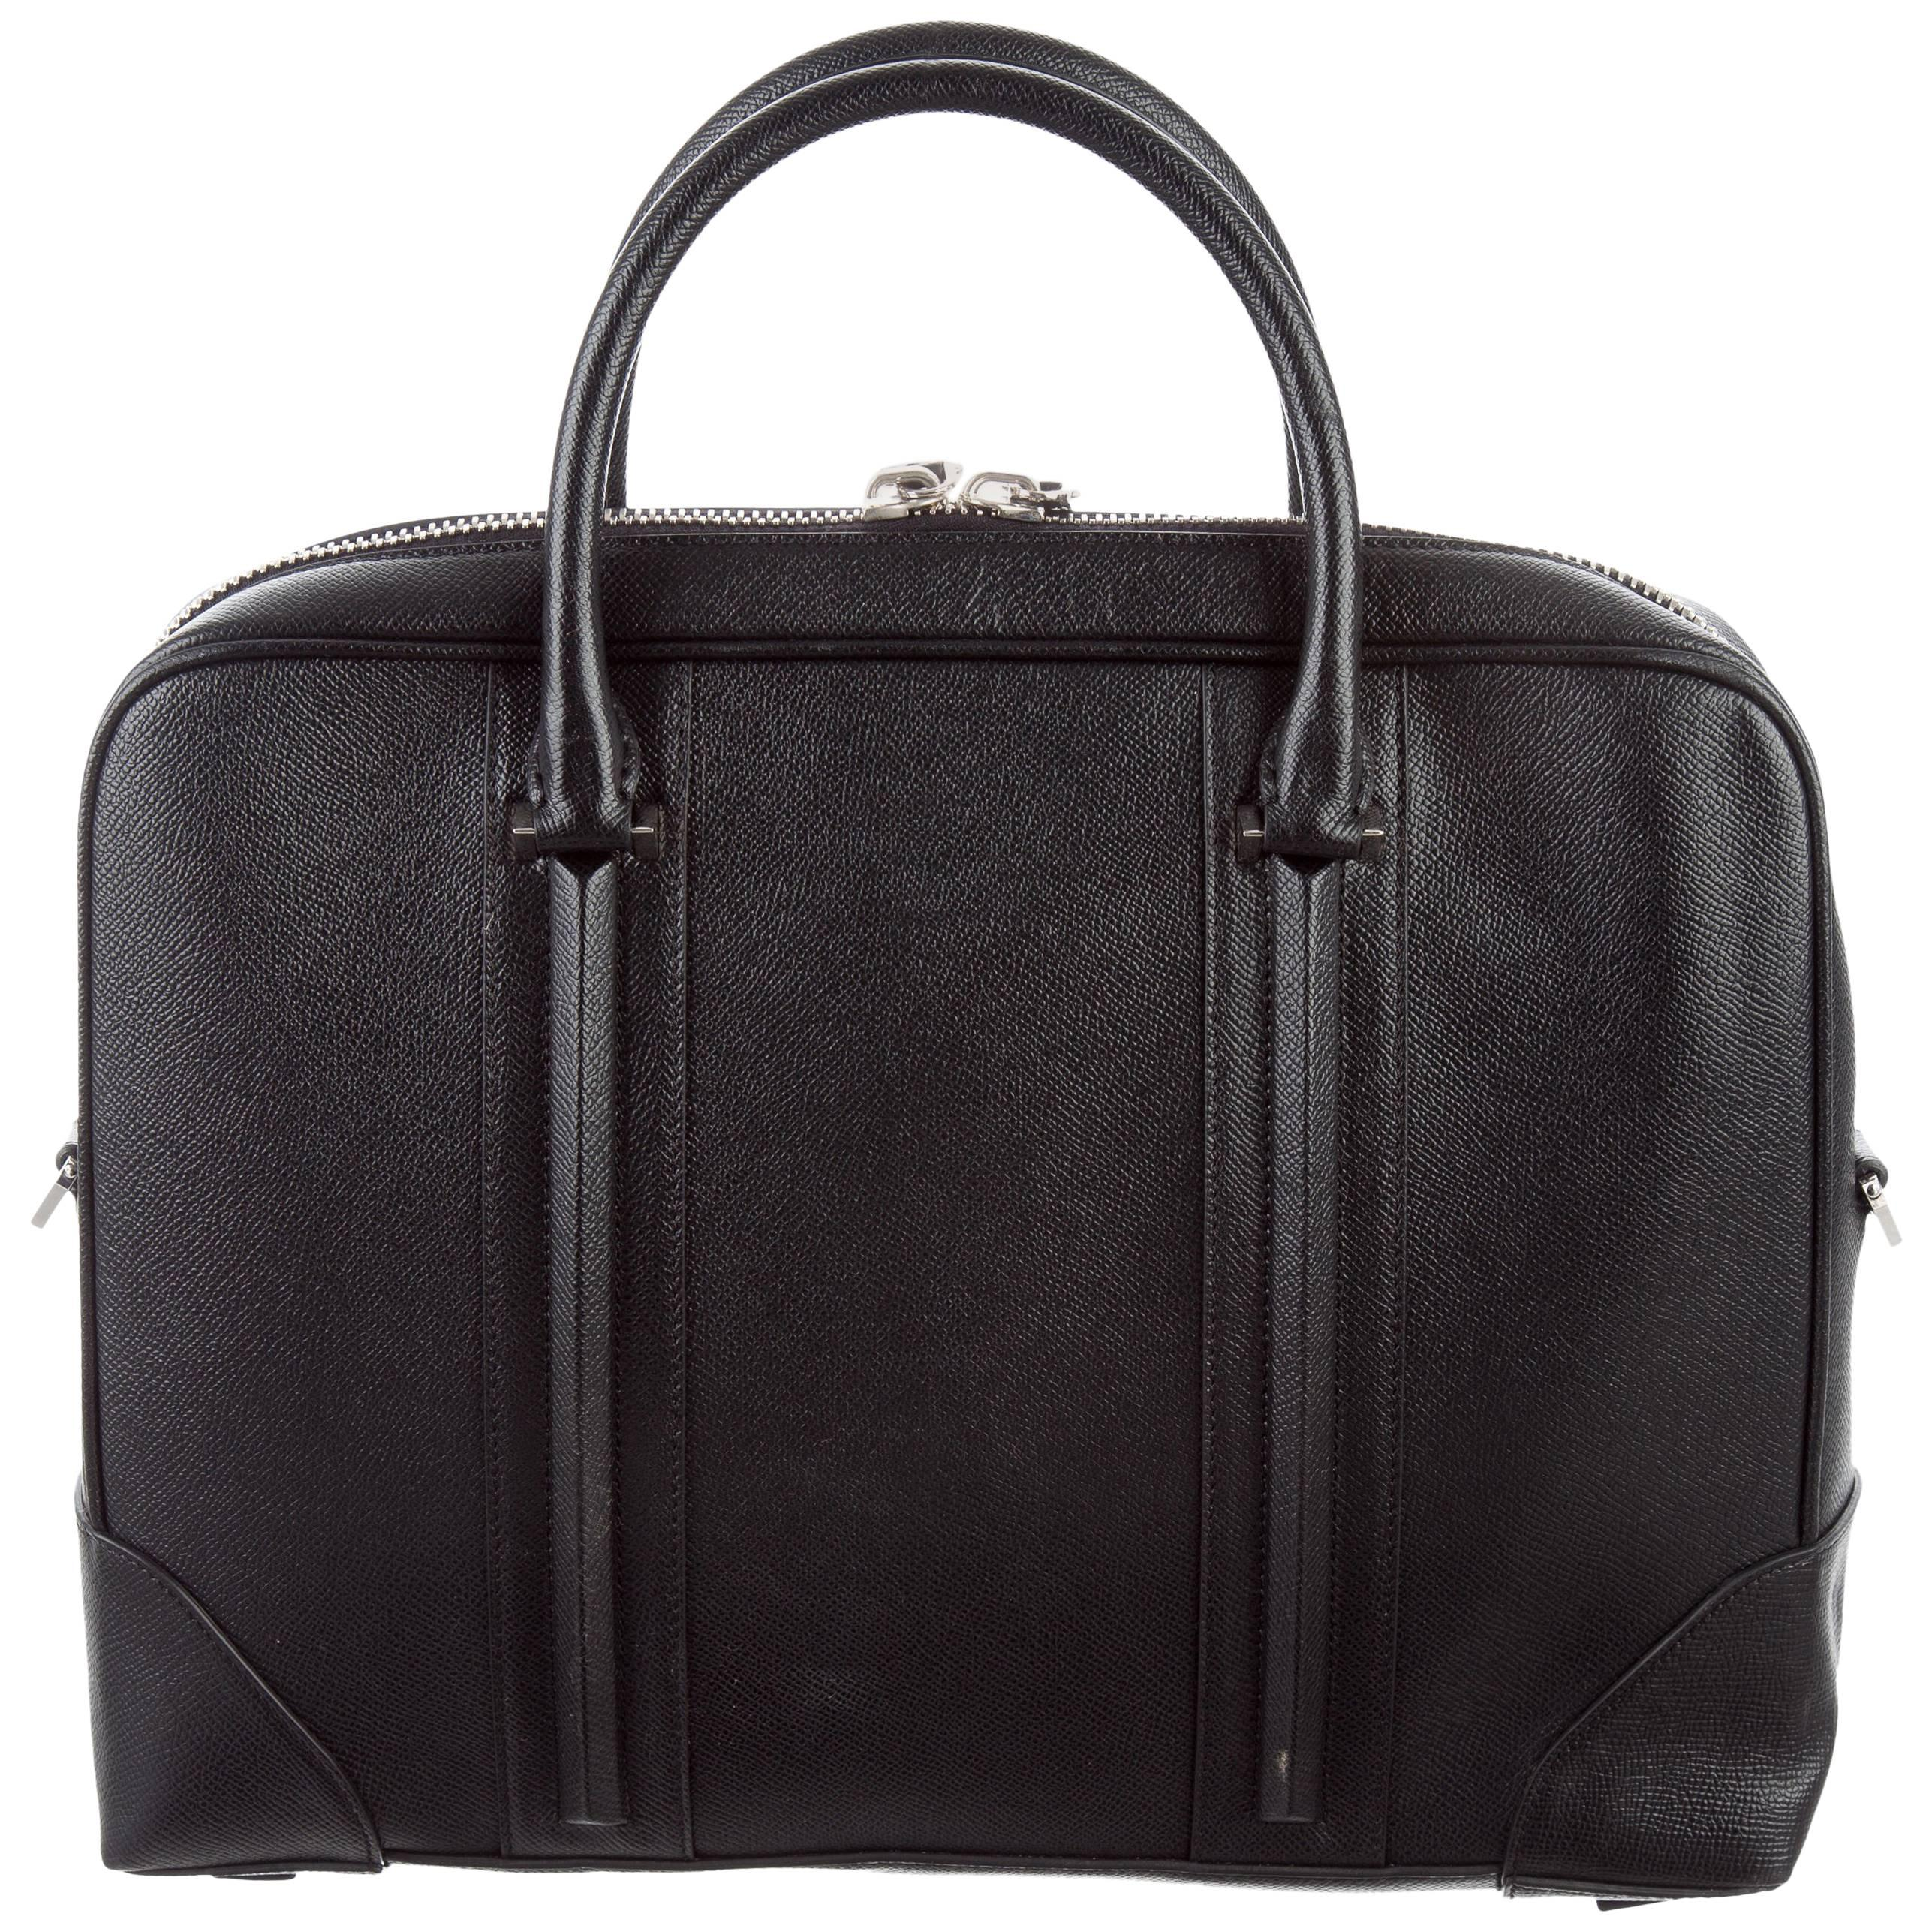 Givenchy New Black Leather Mens Business Travel Briefcase Tote Shoulder Bag cDqetGRo6